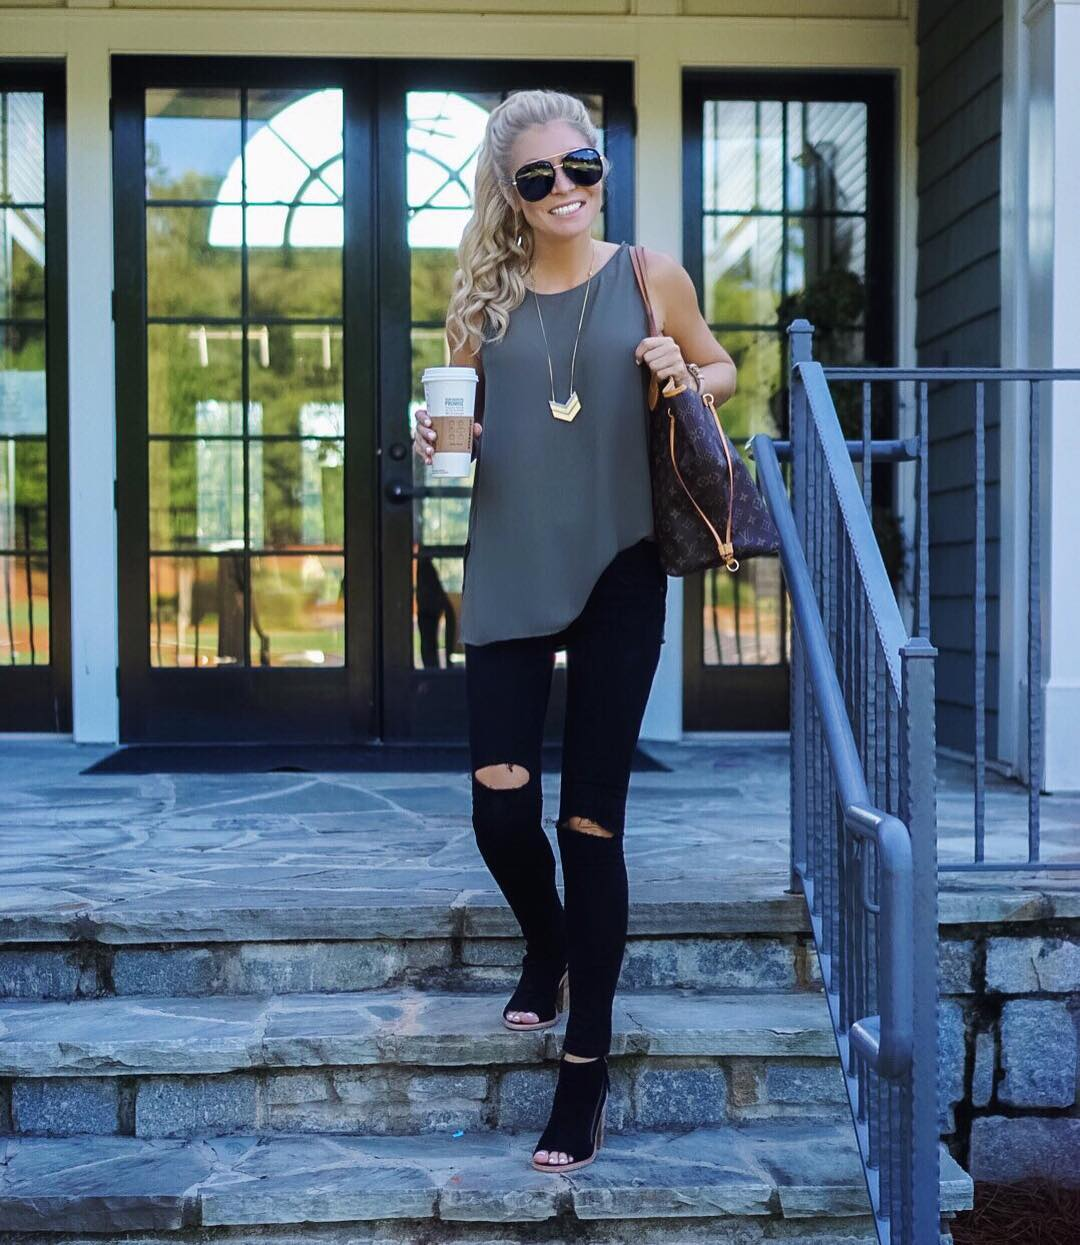 Another day, another pair of ripped jeans! I'm totally obsessed!!✌️#rippedjeansarelife http://liketk.it/2p302 #ootd #wiw #liketkit #readyforfall